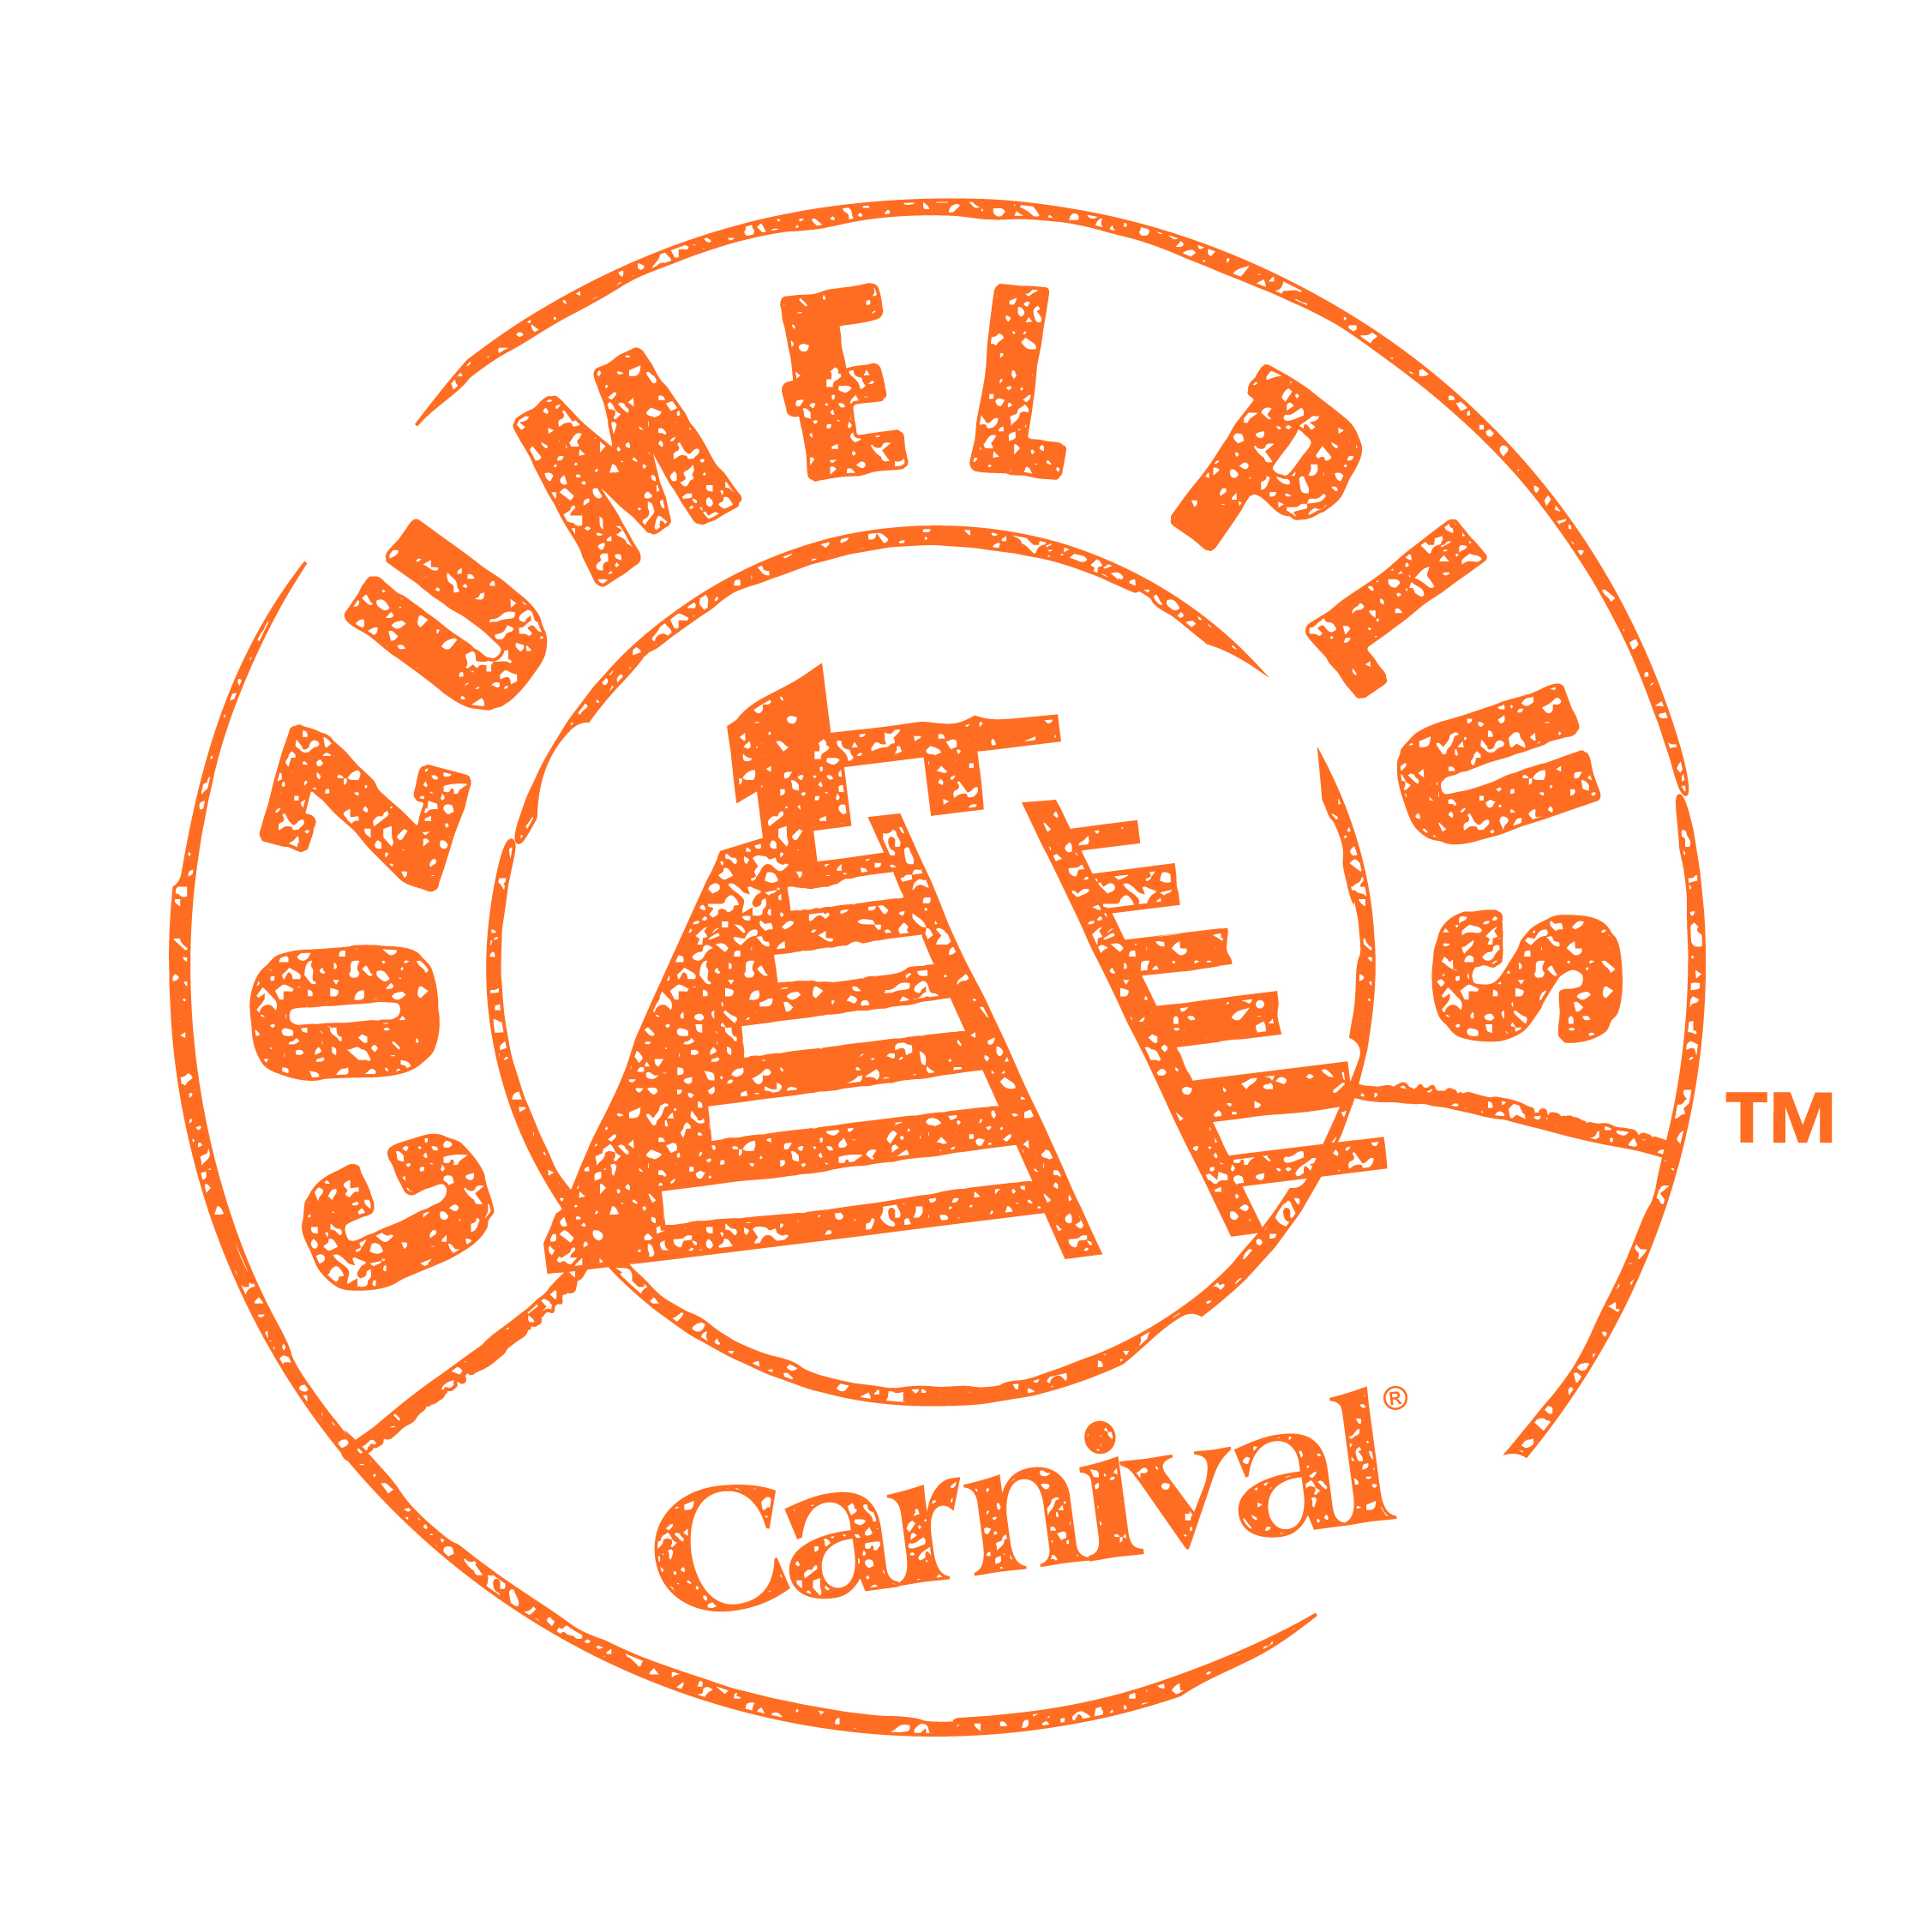 Carnival Extends Time In Port In Cozumel To Provide Exciting New Shore Excursion Choices On The Island And Mexico's Mainland